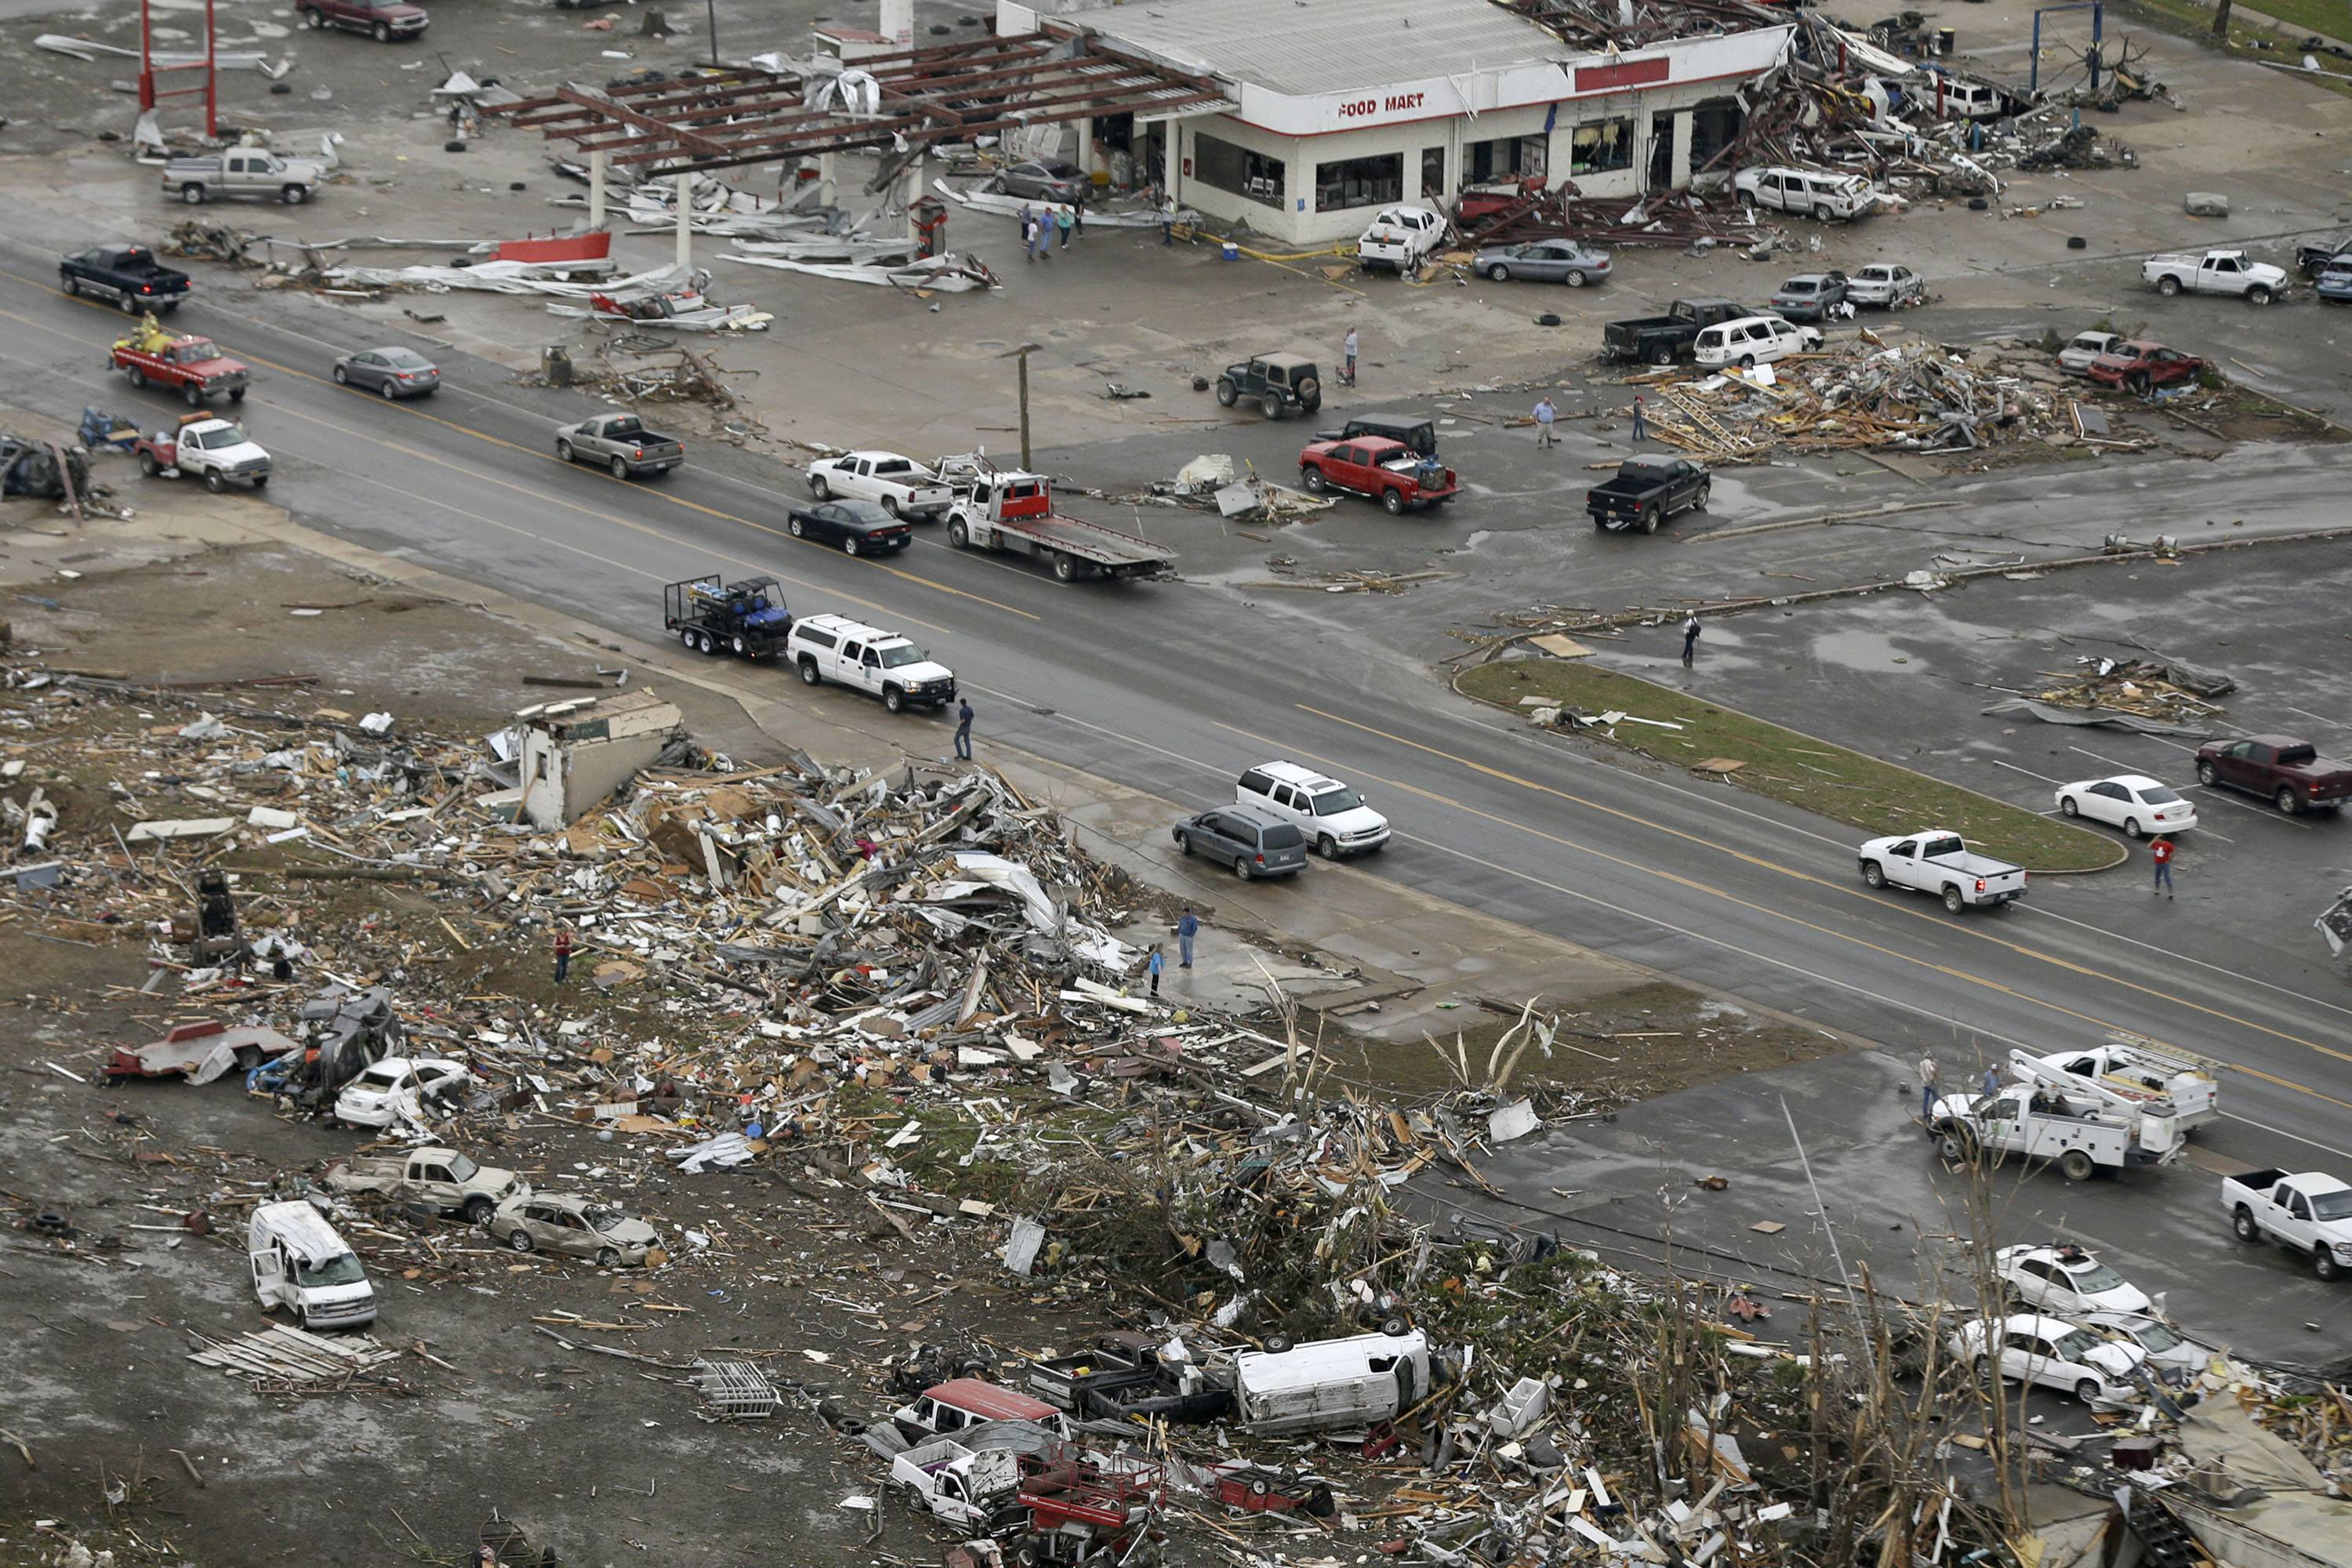 Homes and businesses are wrecked in downtown Vilonia, Ark., Monday, April 28, 2014 after a tornado struck the town late Sunday. The most powerful twister this year carved an 80-mile path of destruction through suburbs north of the state capital of Little Rock, killing at least 16 people.